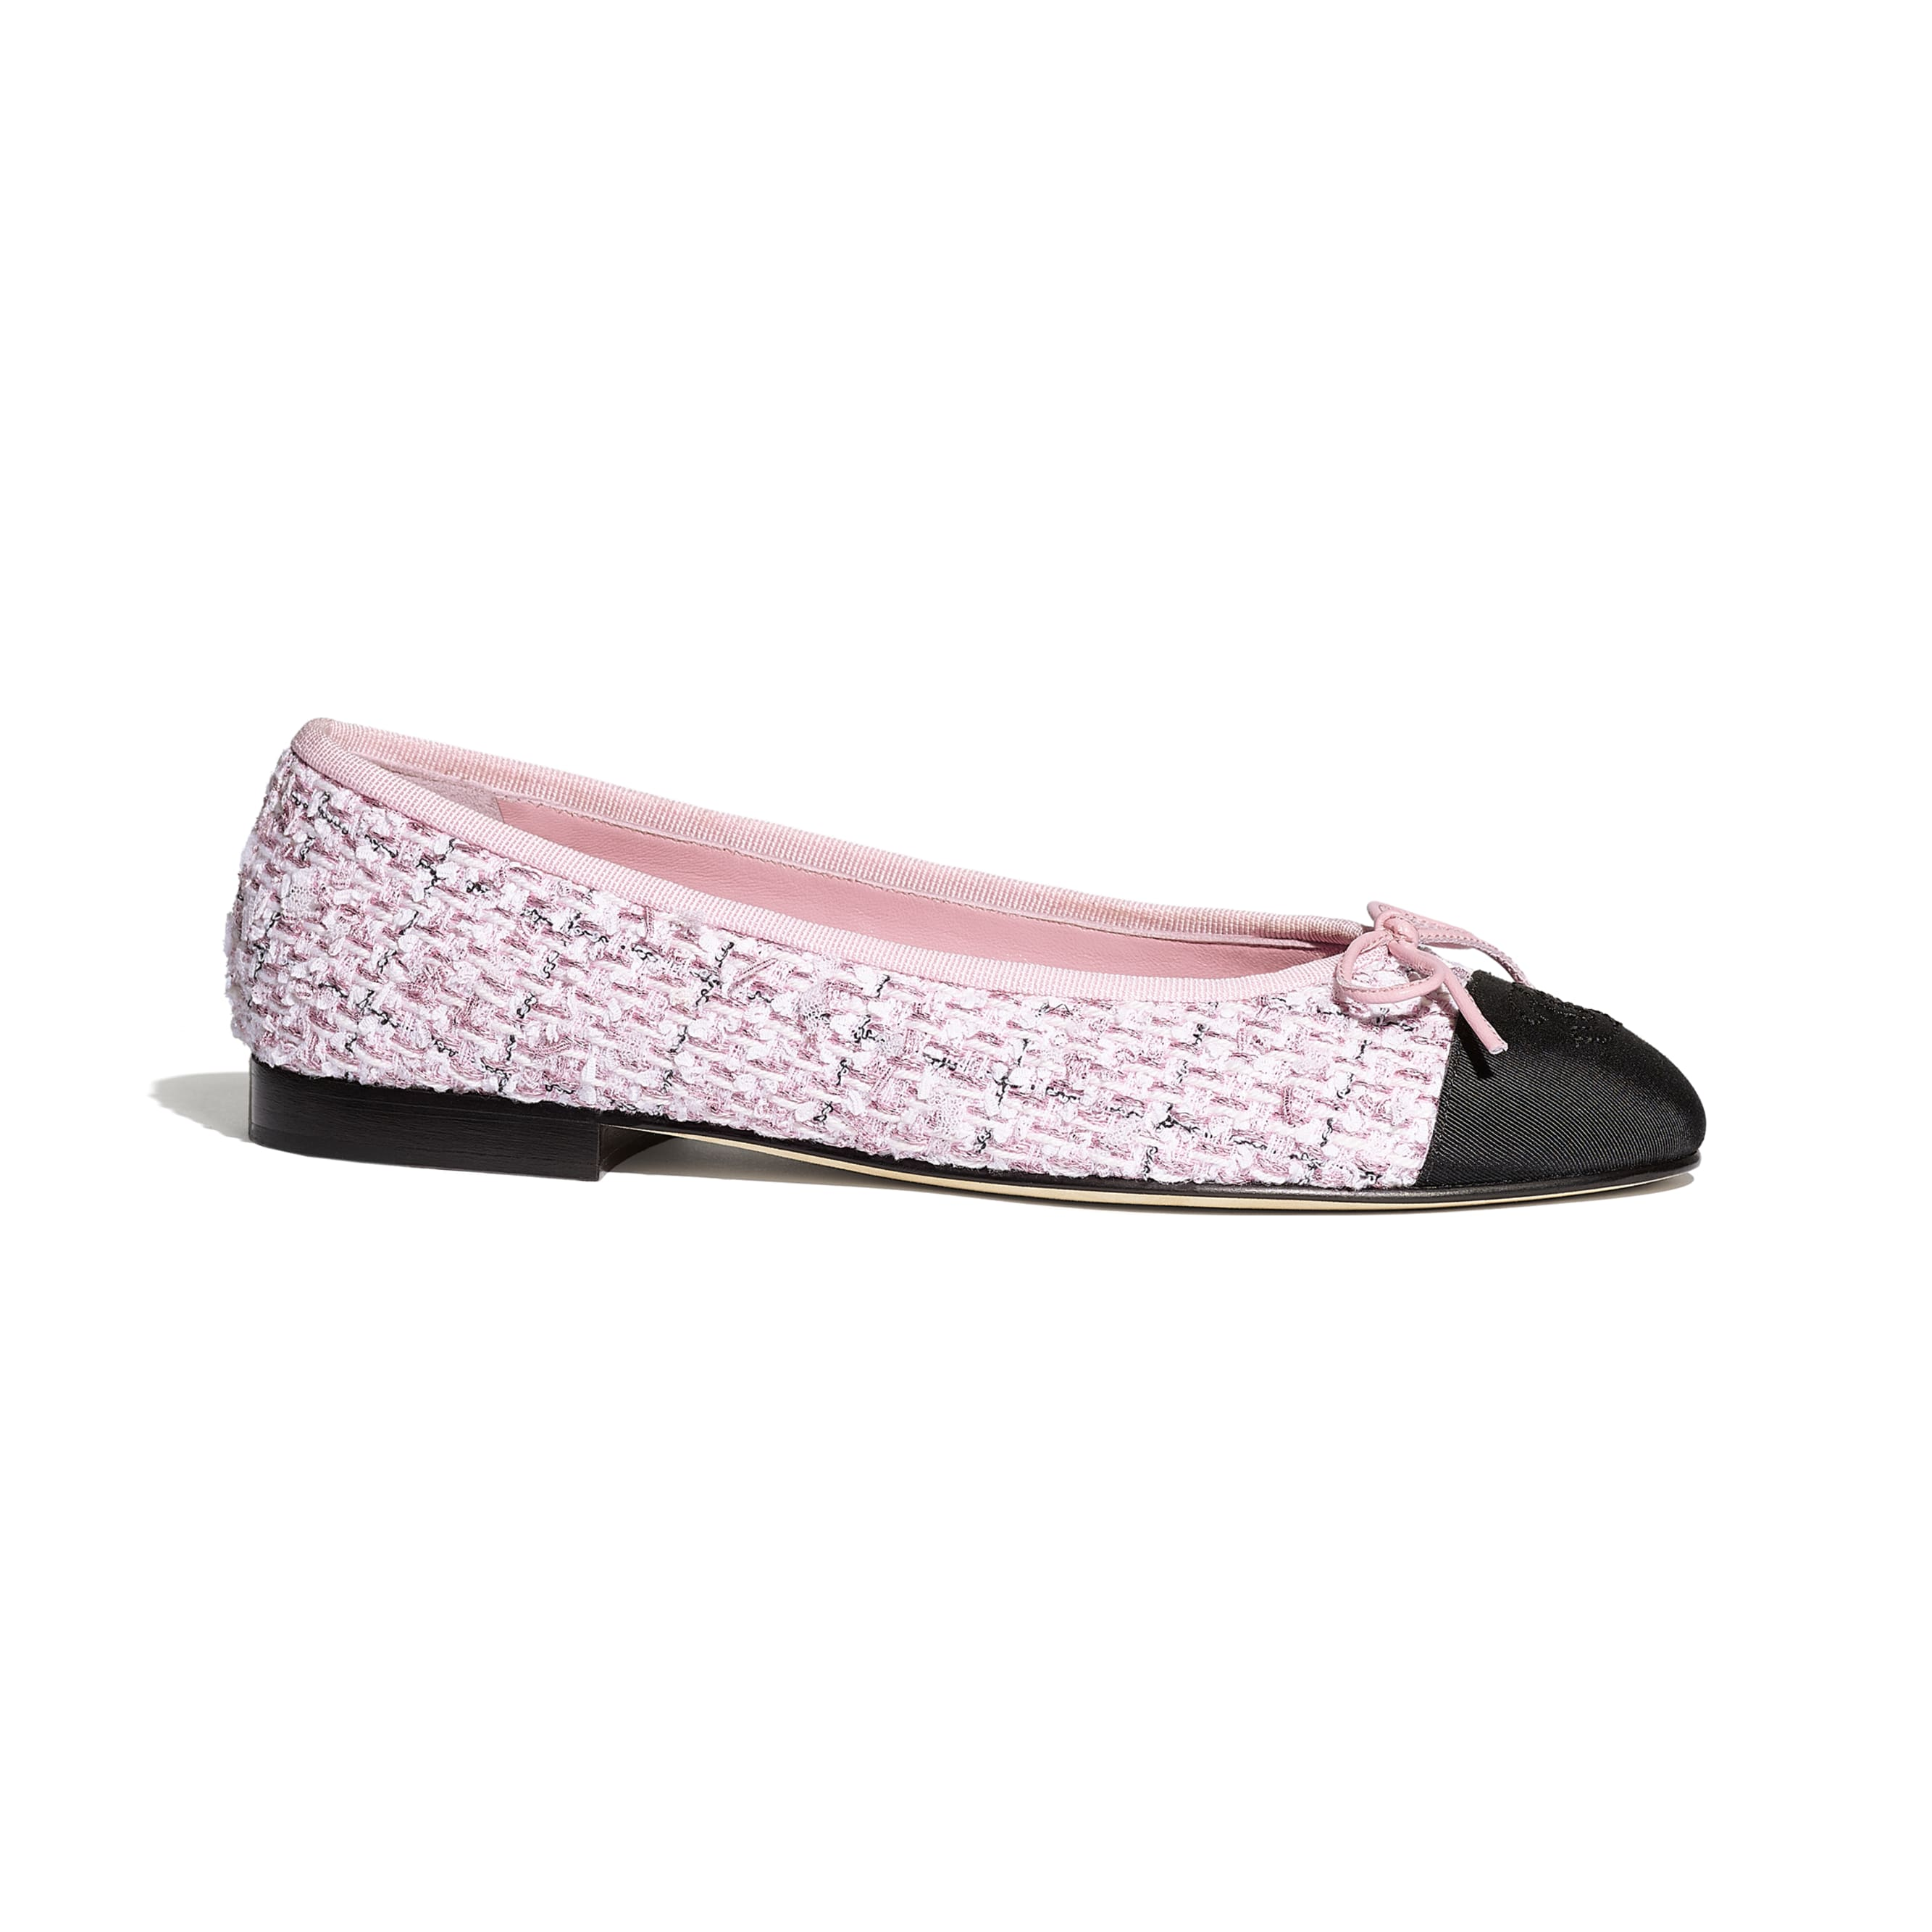 Flats - Pink & Black - Tweed & Grosgrain - CHANEL - Default view - see standard sized version